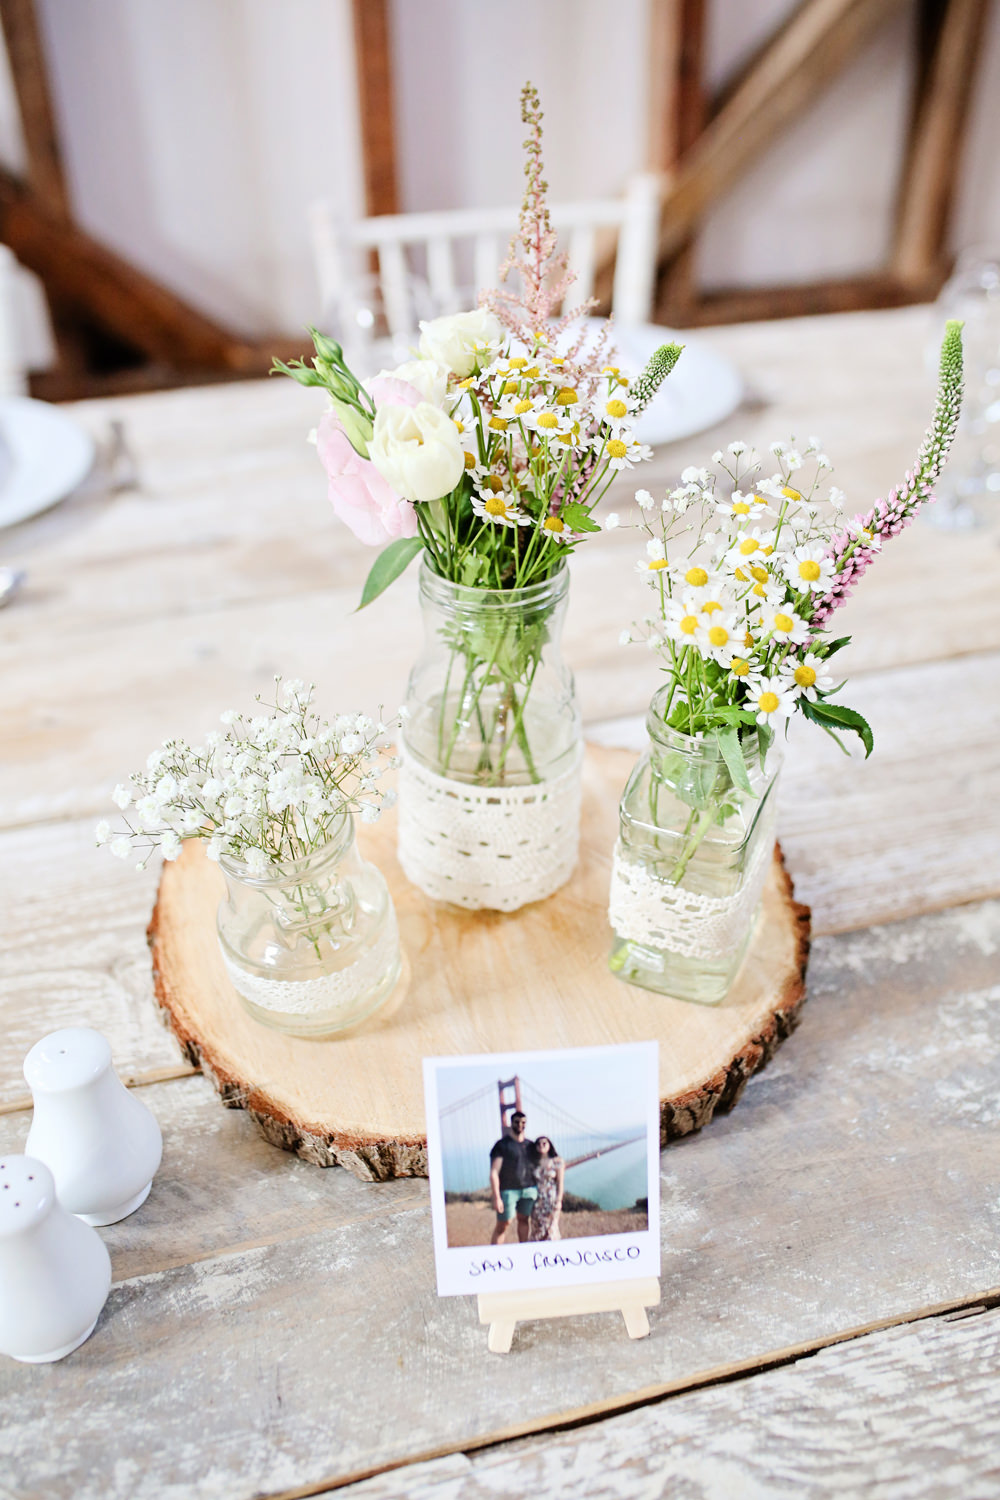 Table Centrepiece Decor Log Slice Flowers Jars Lace Milling Barn Wedding Victoria Mitchell Photography